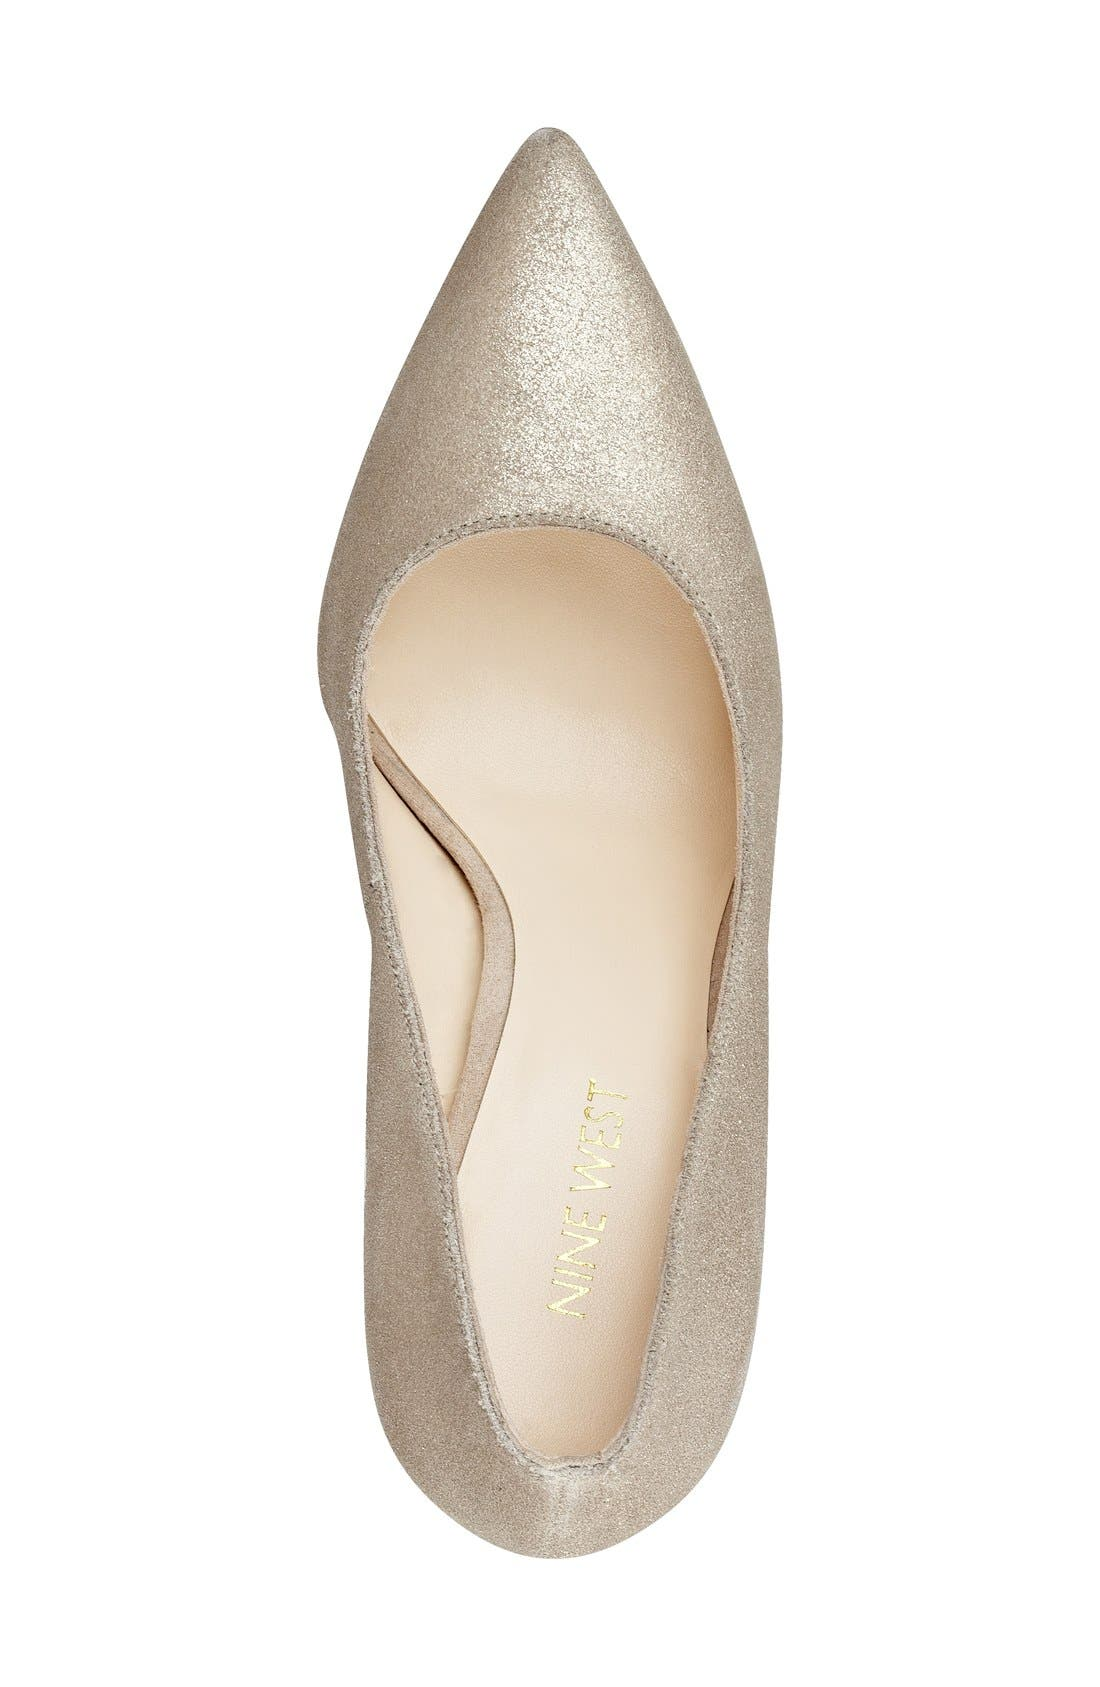 'Tatiana' Pump,                             Alternate thumbnail 3, color,                             Natural/ Gold Metallic Suede